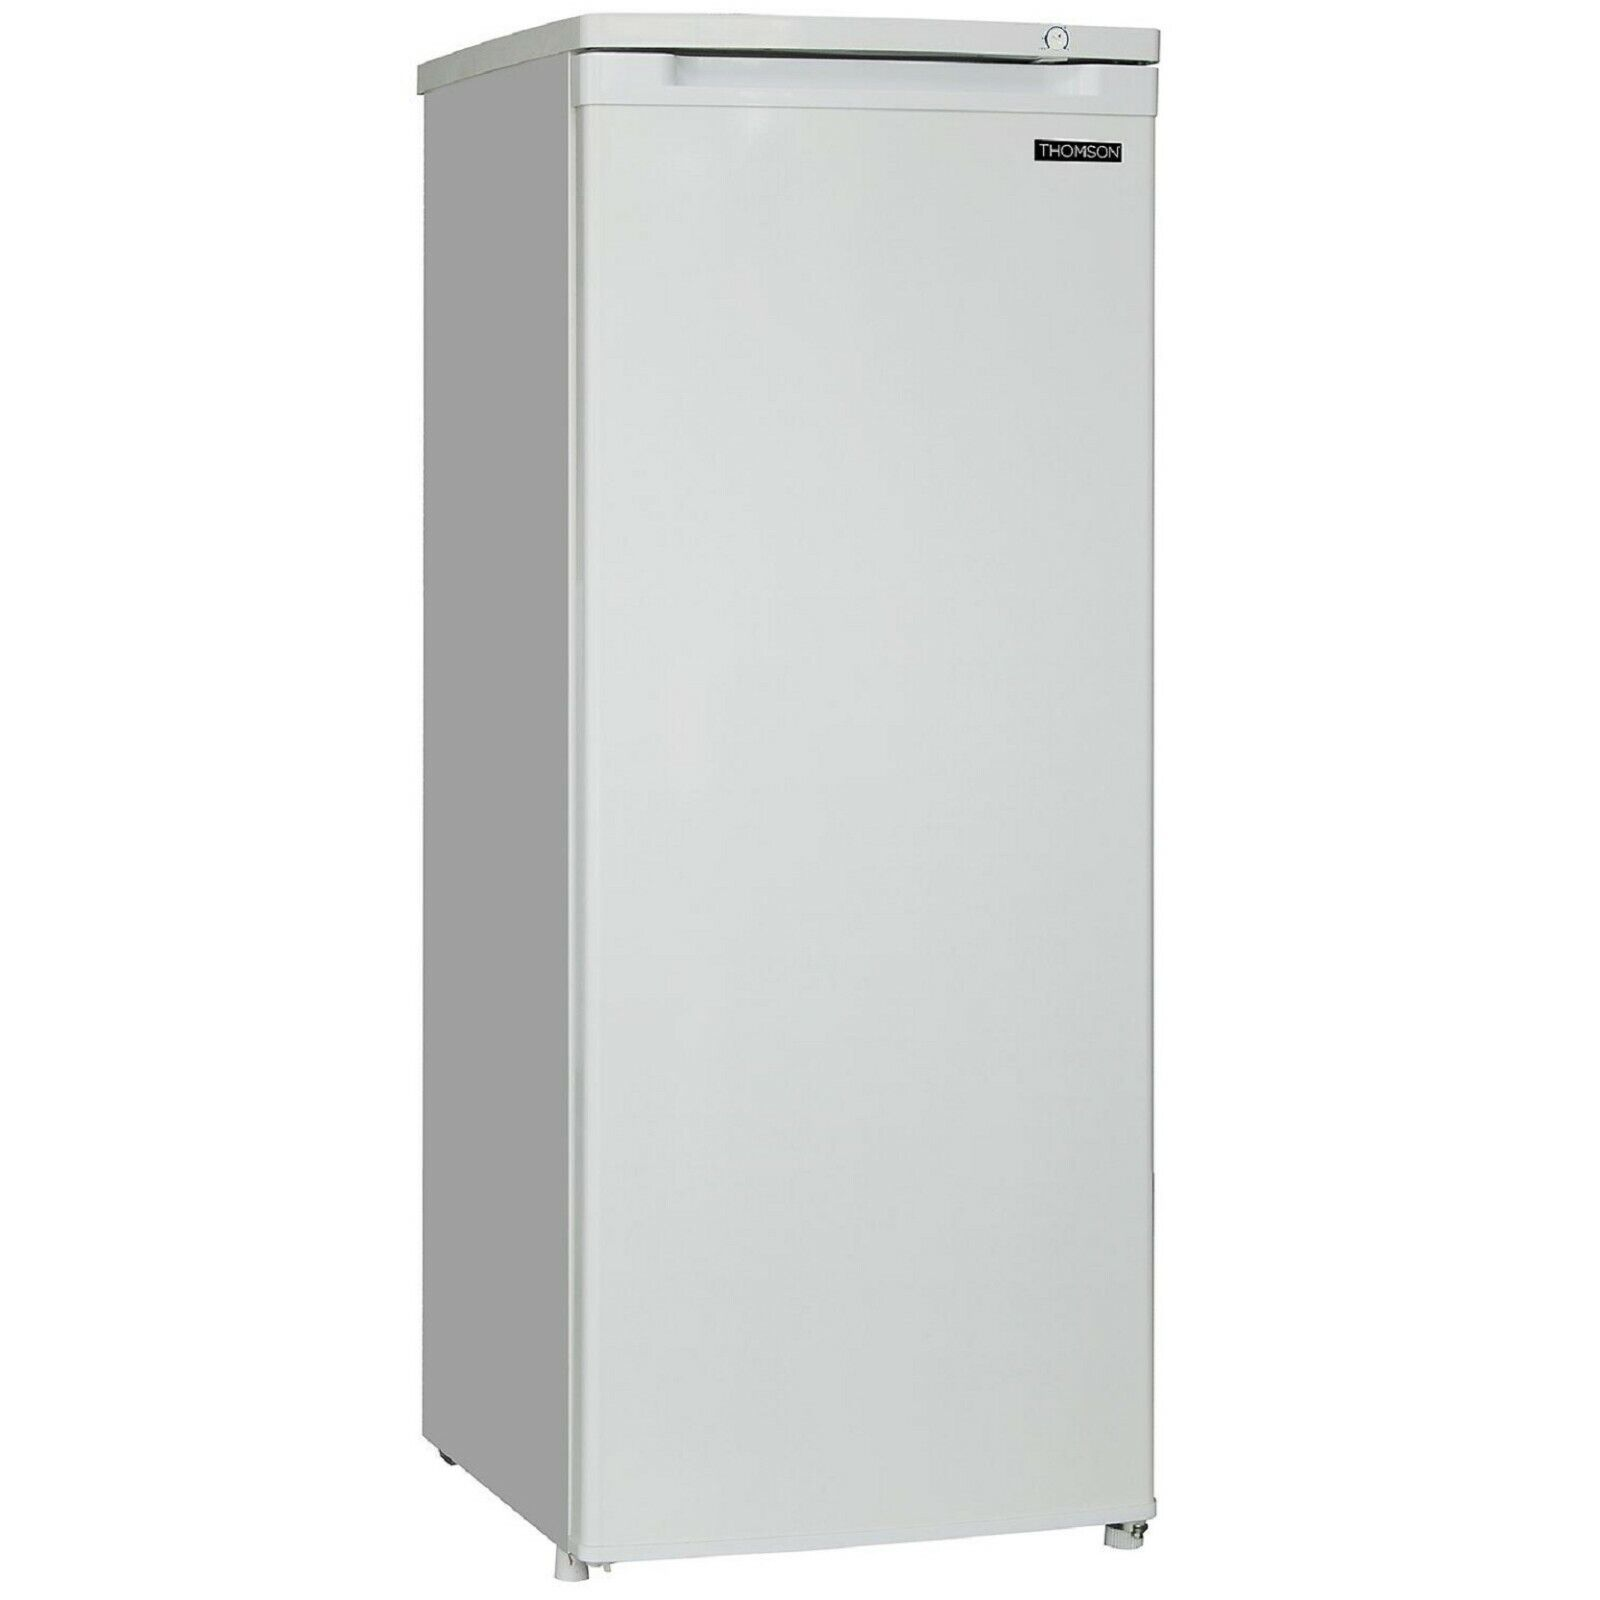 Thomson Upright Freezer  6.5 cu. ft. - Free shipping